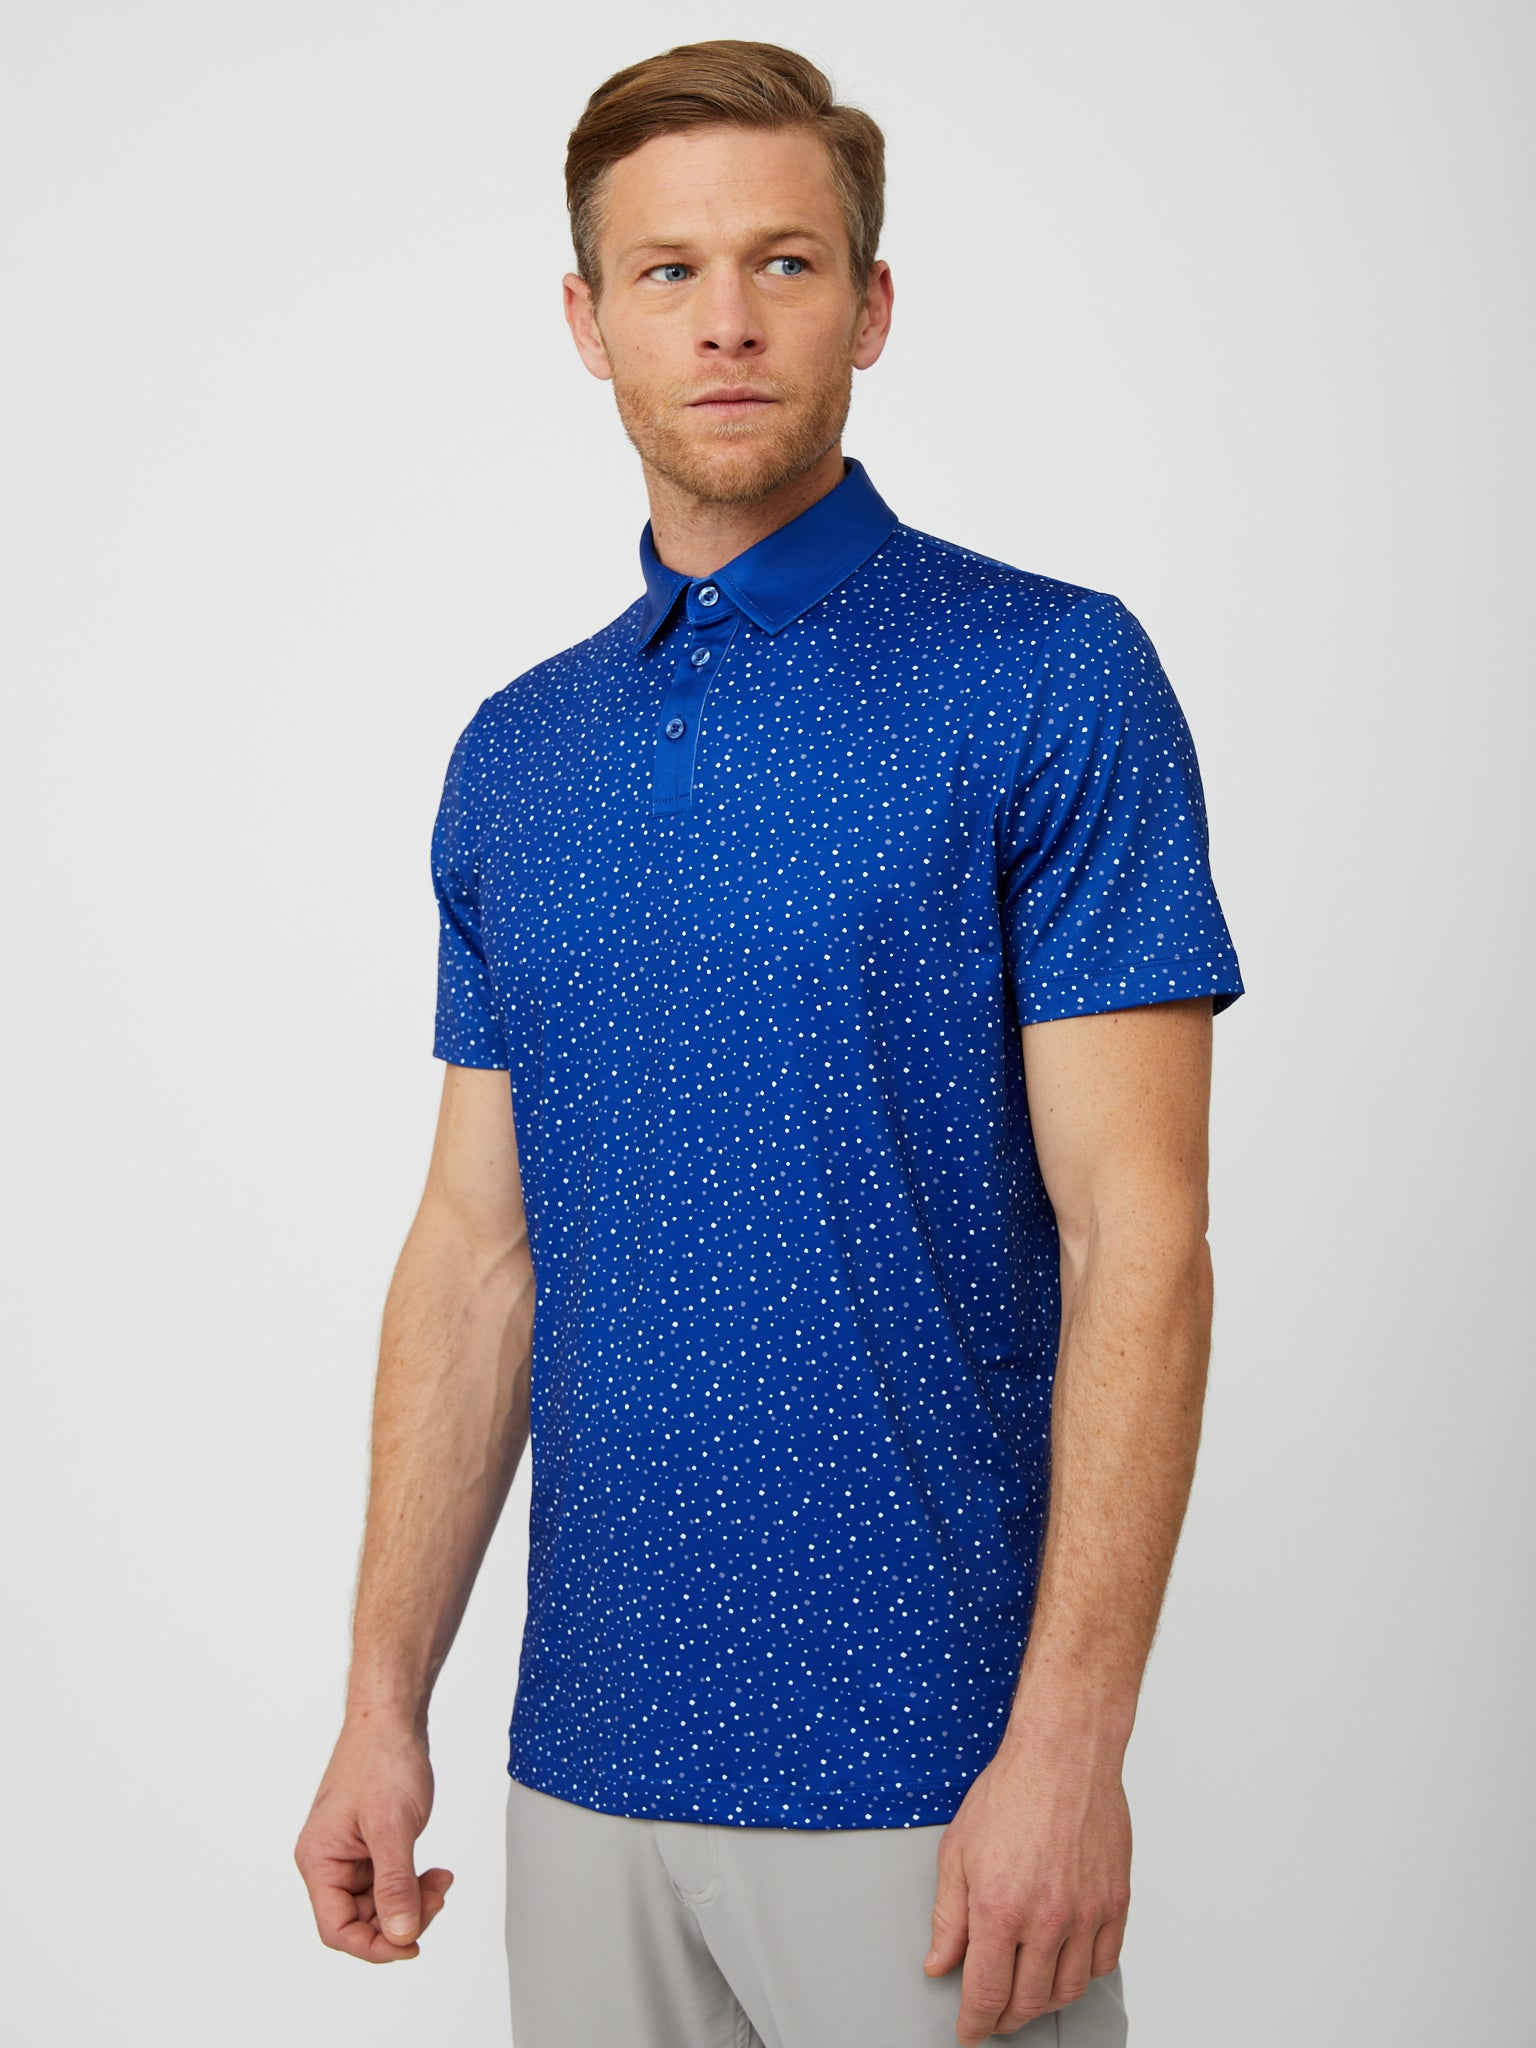 Upton Polo in Reflex Blue/Multi